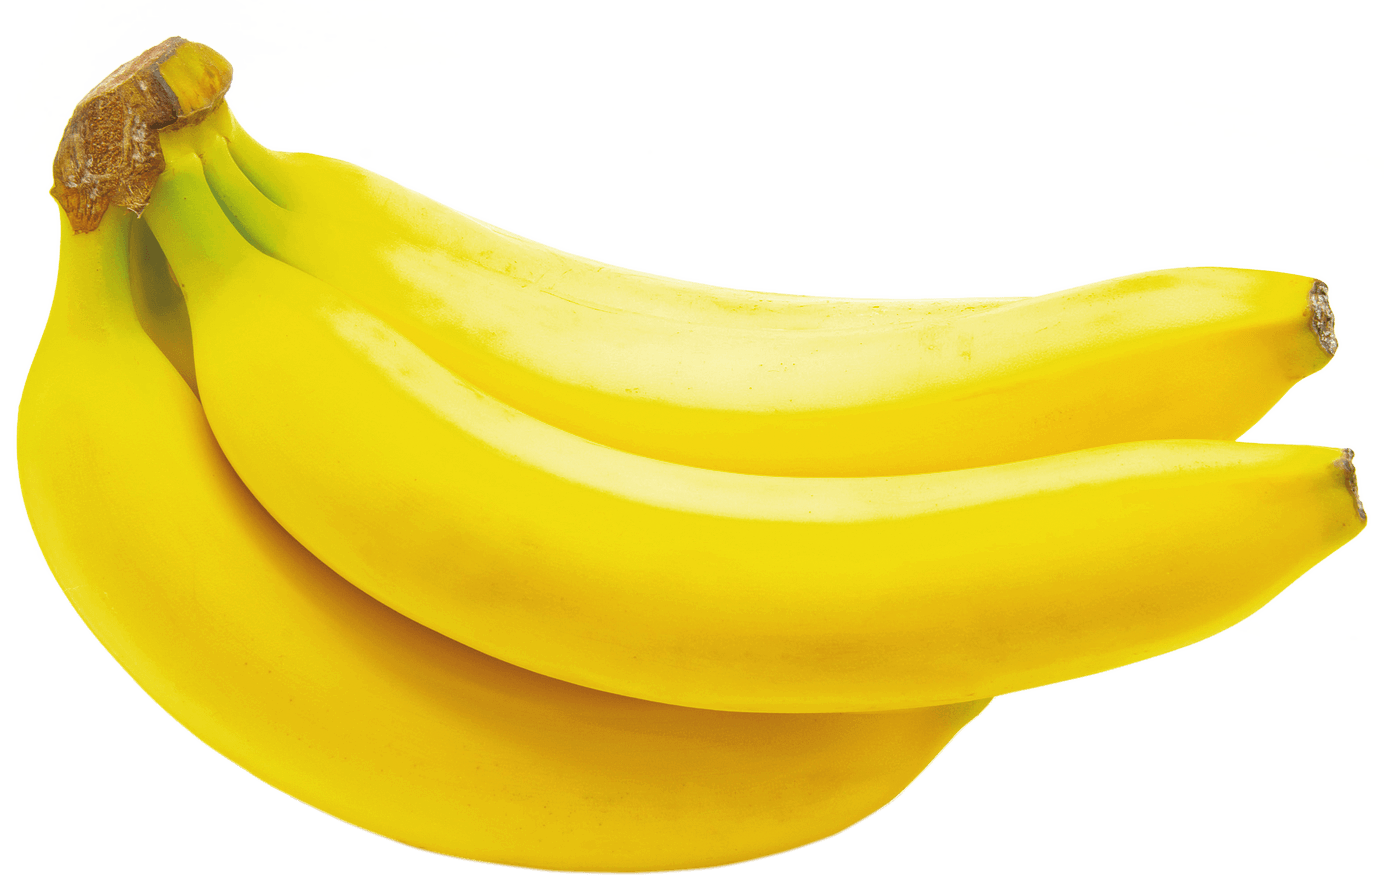 Three transparent stickpng. Bananas png clipart transparent